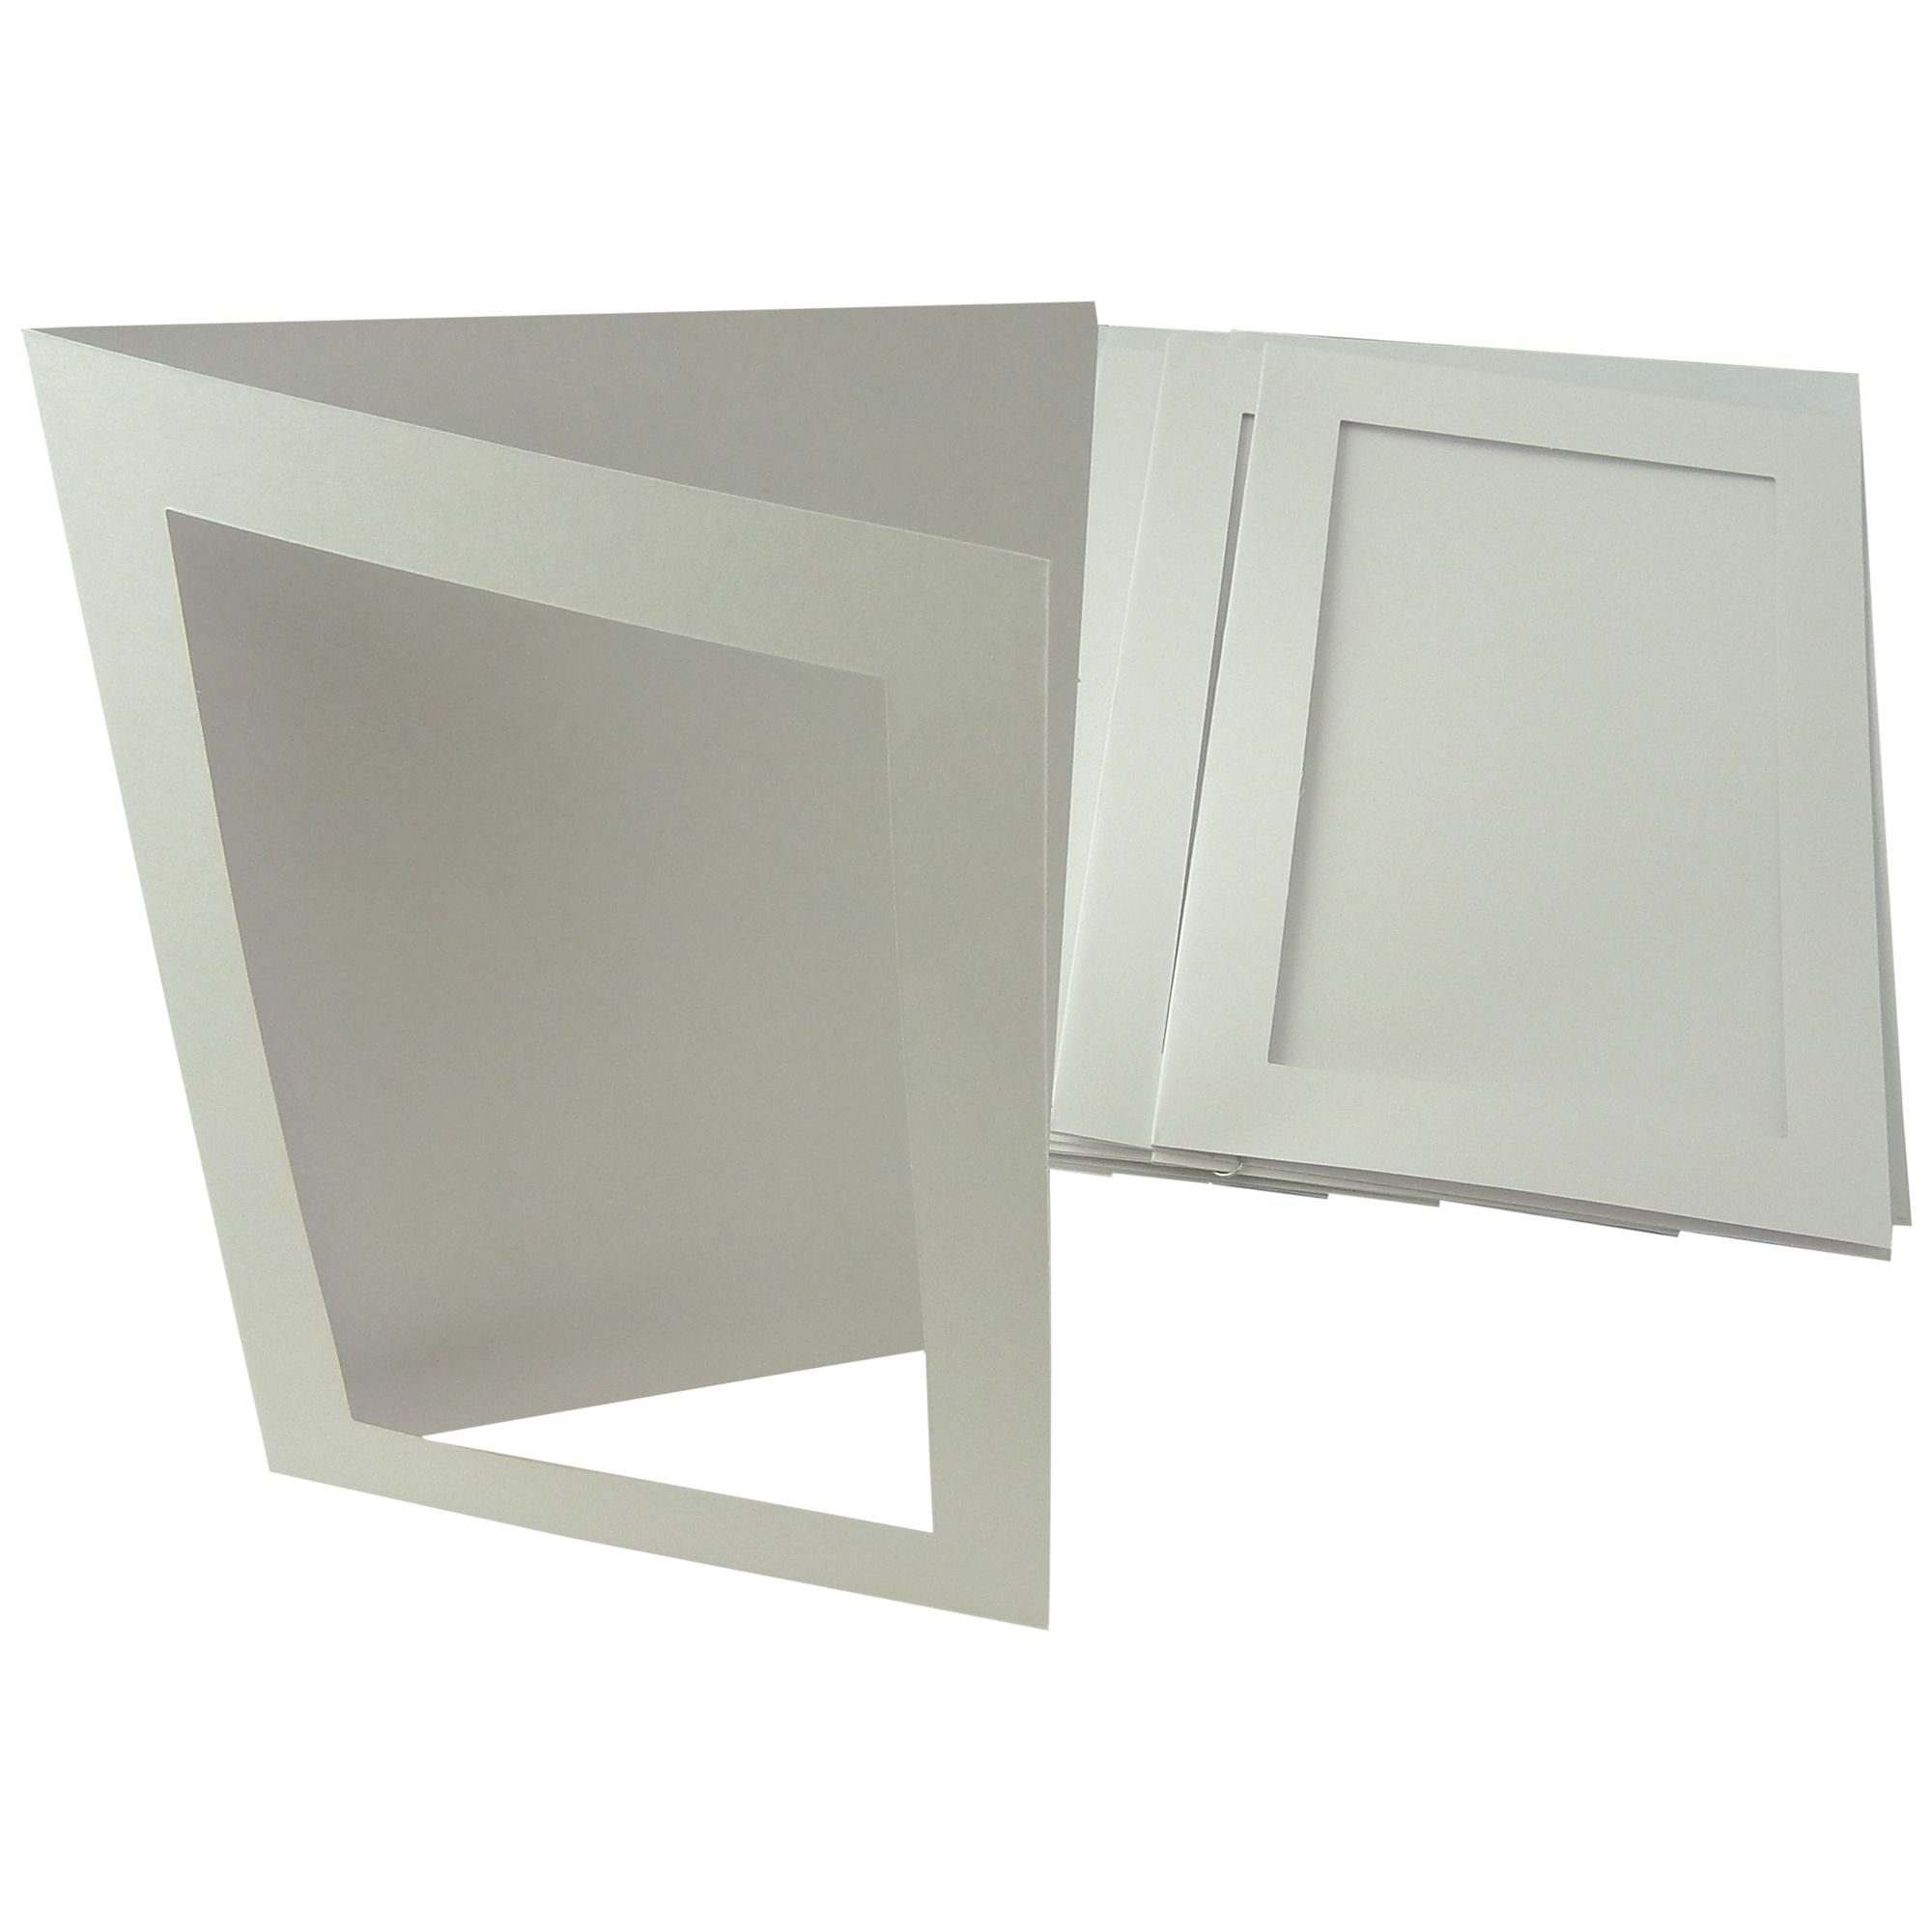 John Lewis A5 Rectangular Aperture Cards, Pack of 10, White